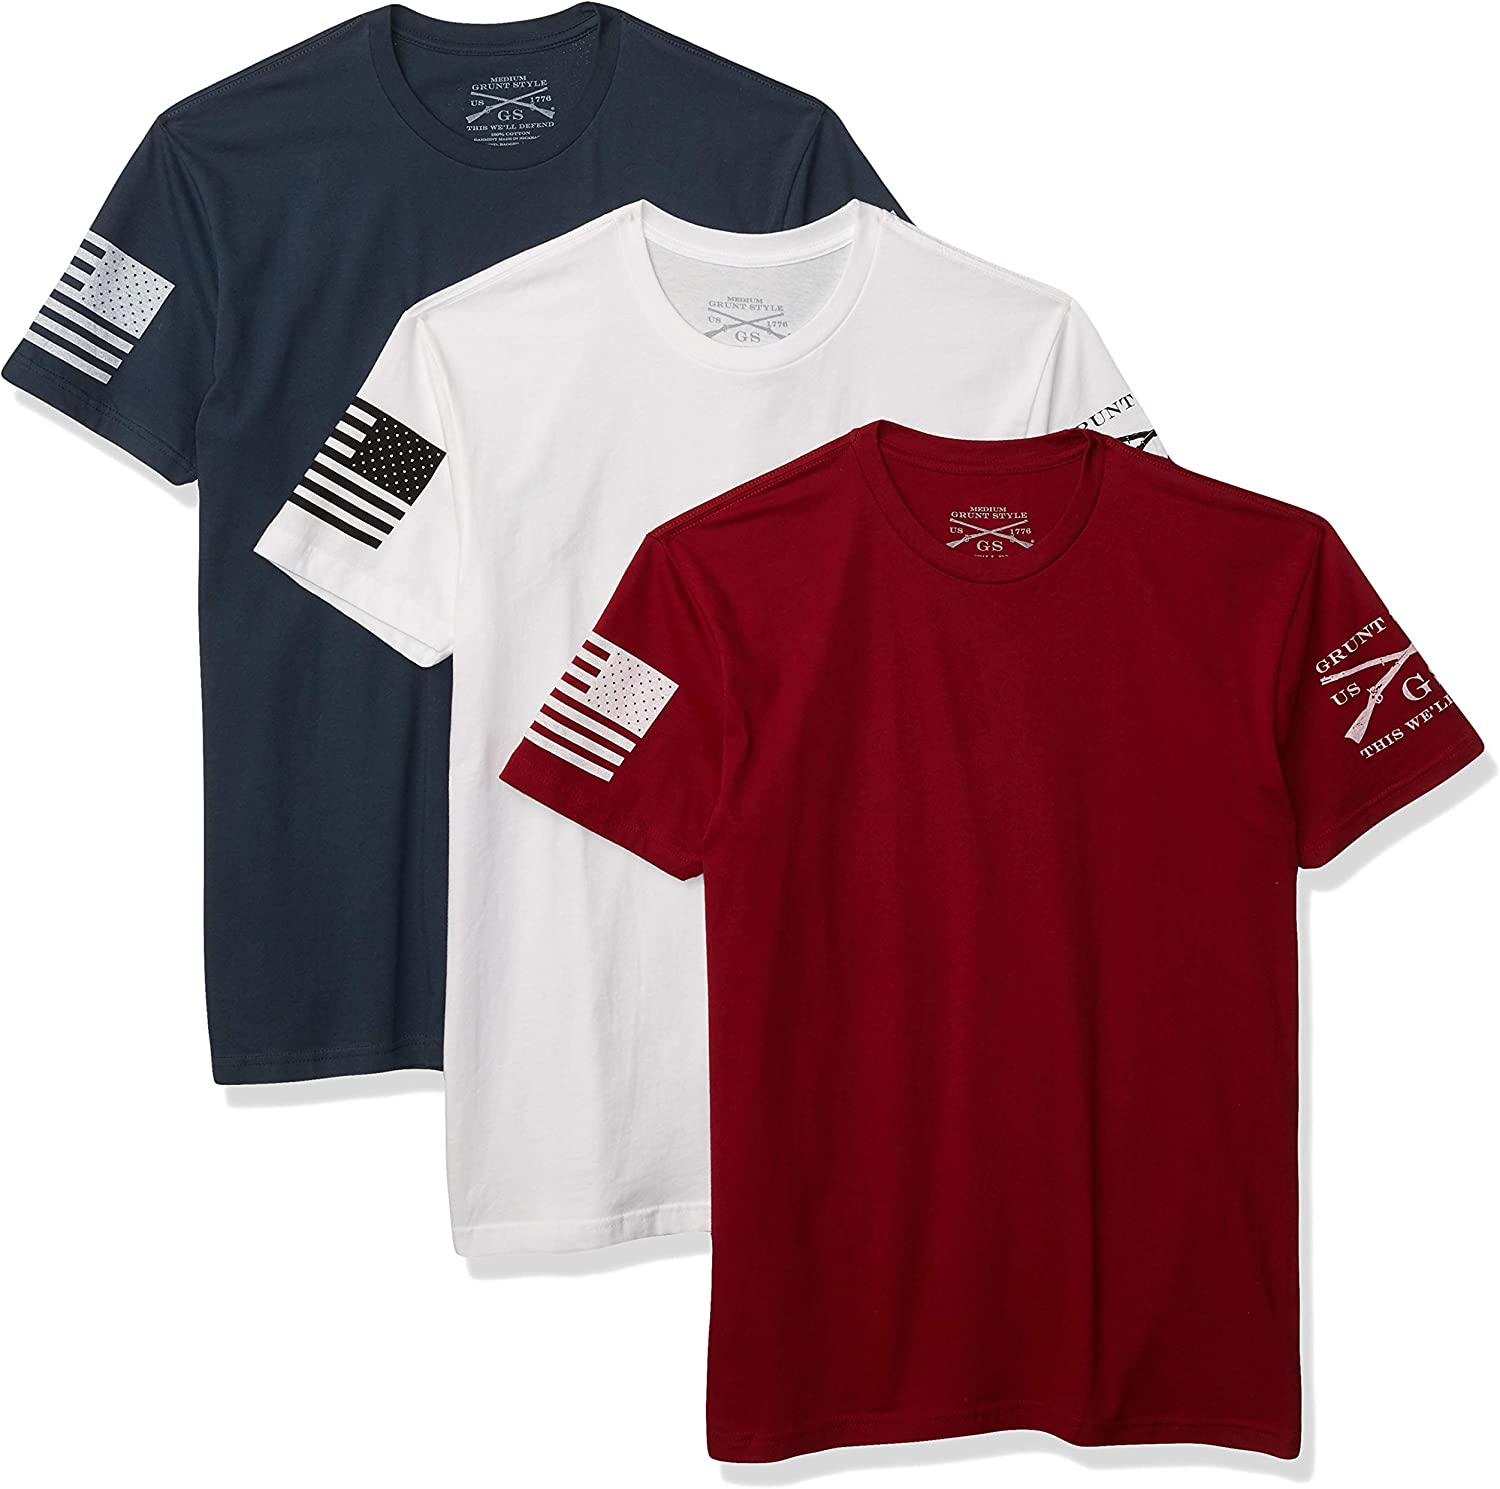 Grunt Style Patriot Pack 3-Pack Men's T-Shirts: Clothing